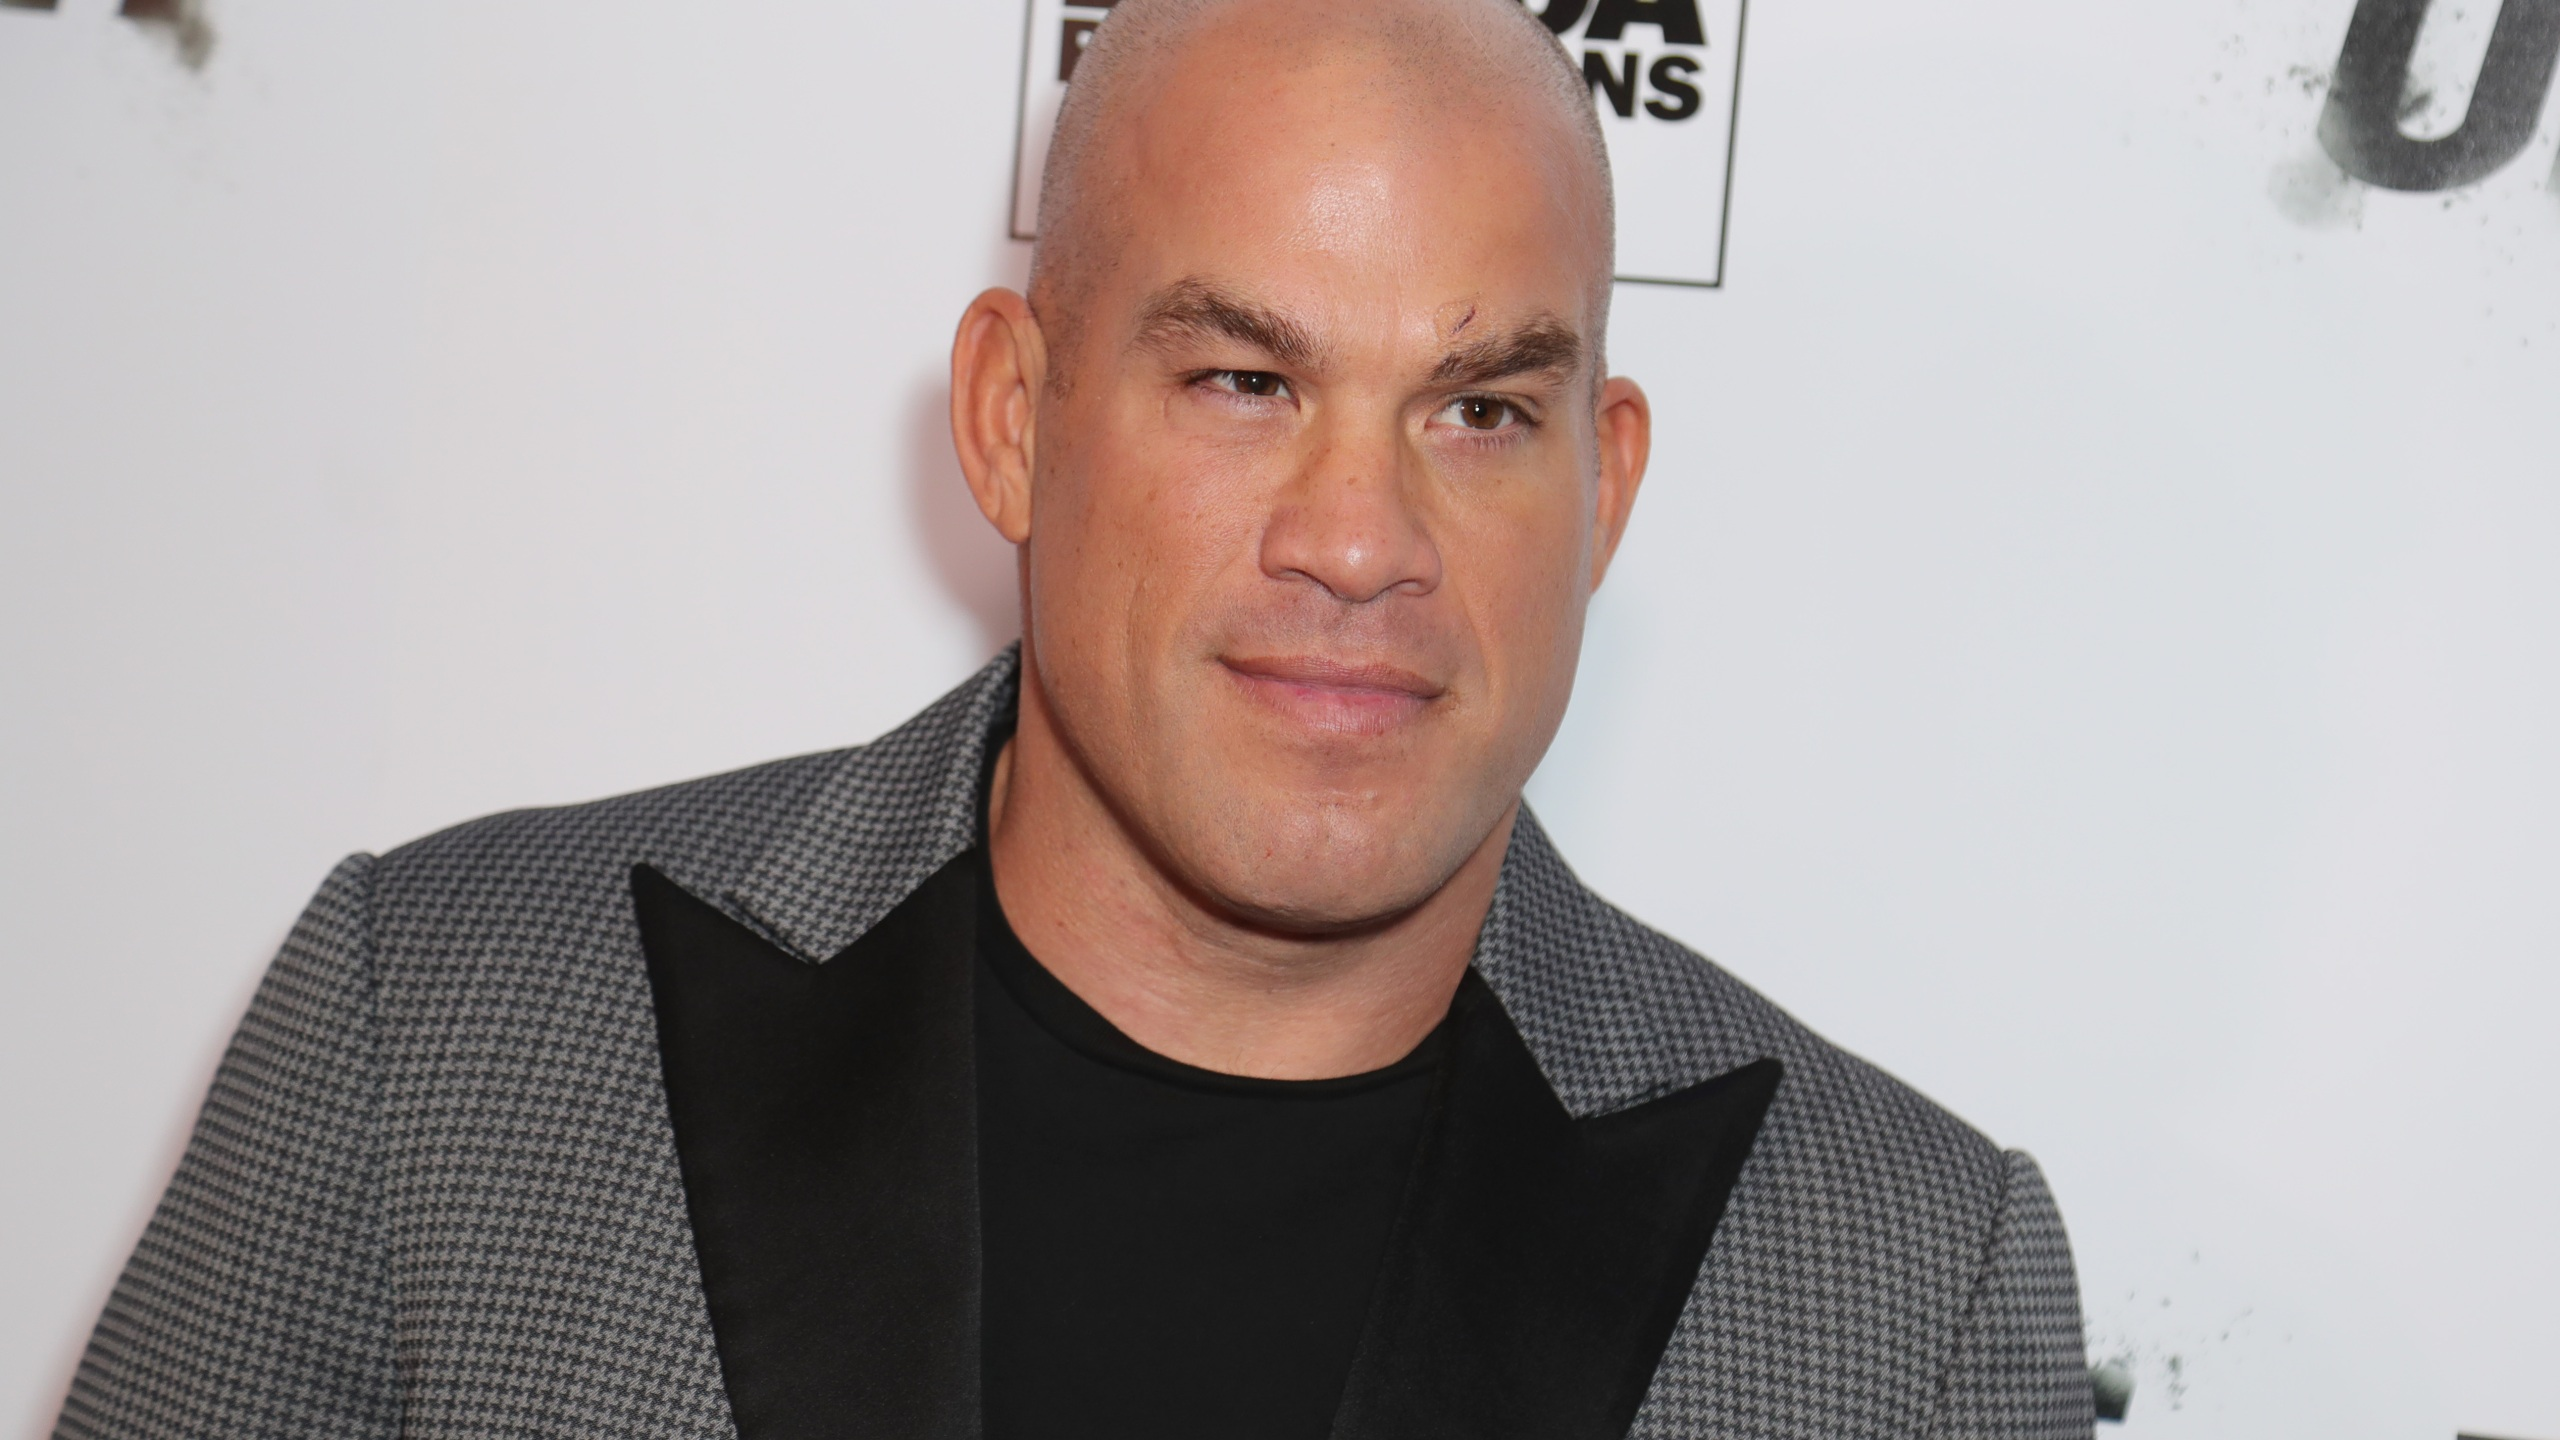 """Tito Ortiz attends the premiere Of """"One Night: Joshua Vs. Ruiz"""" at Writers Guild Theater on Nov. 21, 2019, in Beverly Hills, California. (Leon Bennett/Getty Images)"""